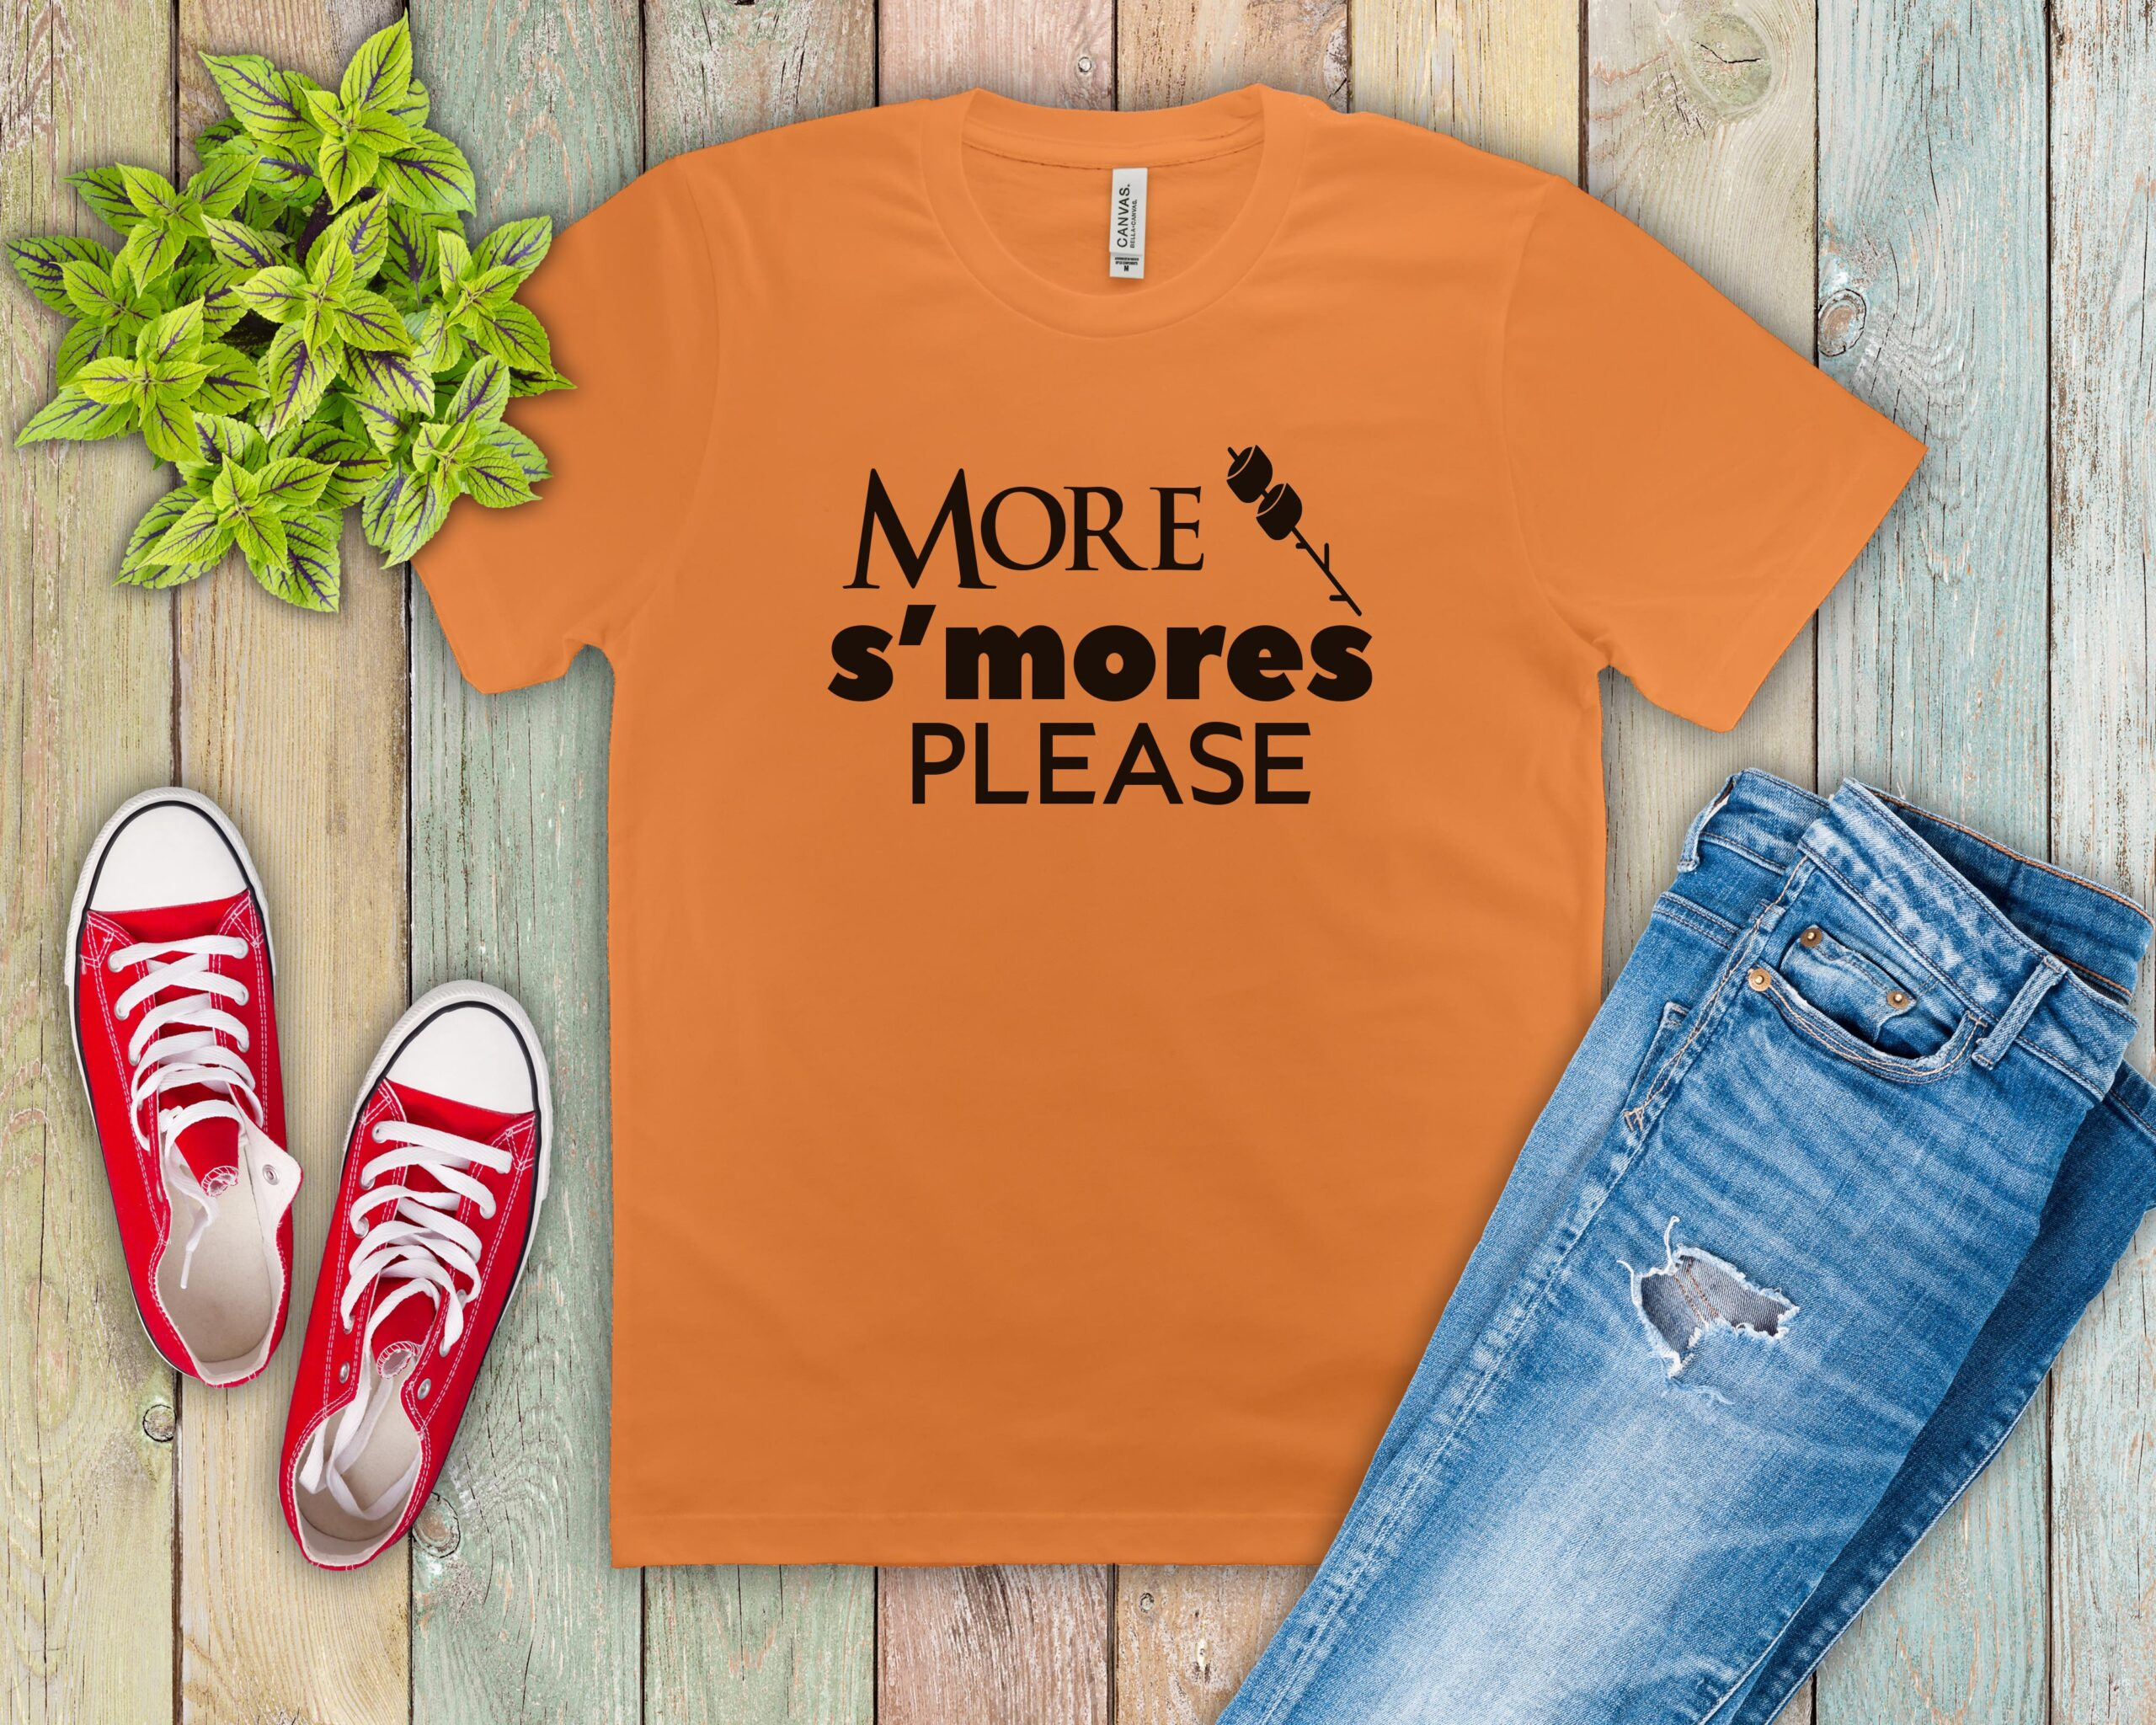 Free More s'mores SVG File